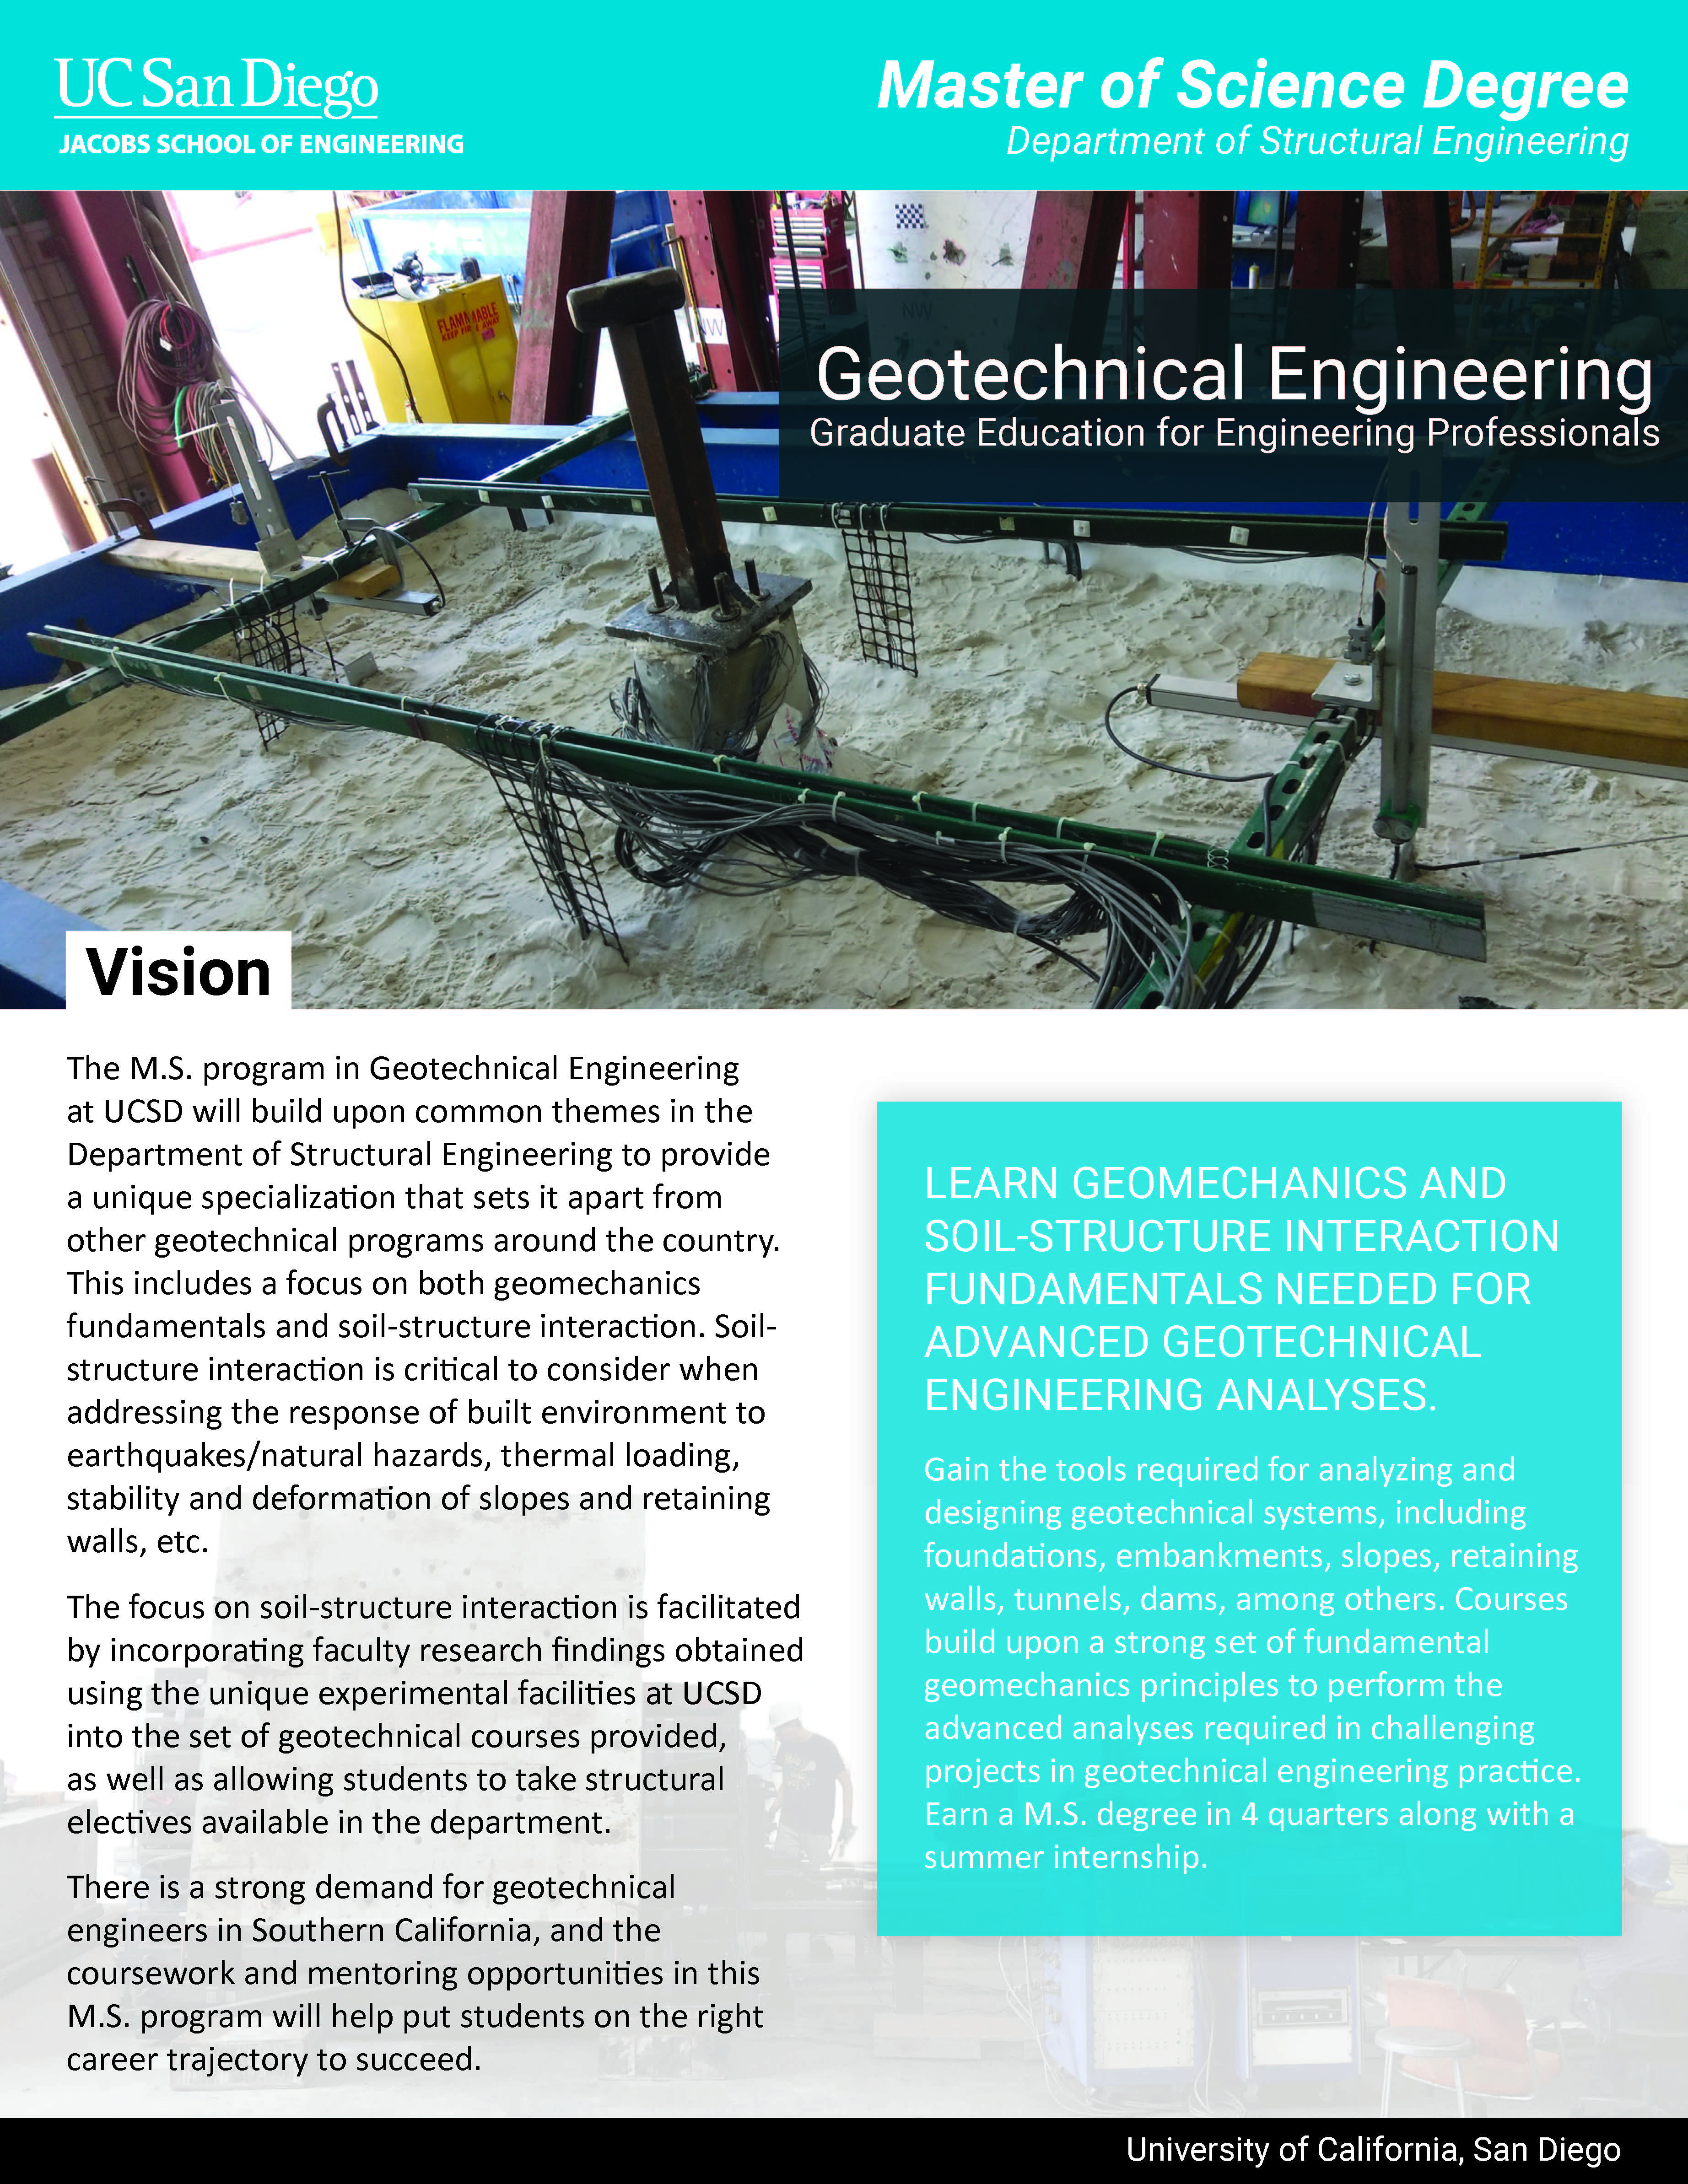 geotechnical engineering draft 2 (1)_Page_1.jpg